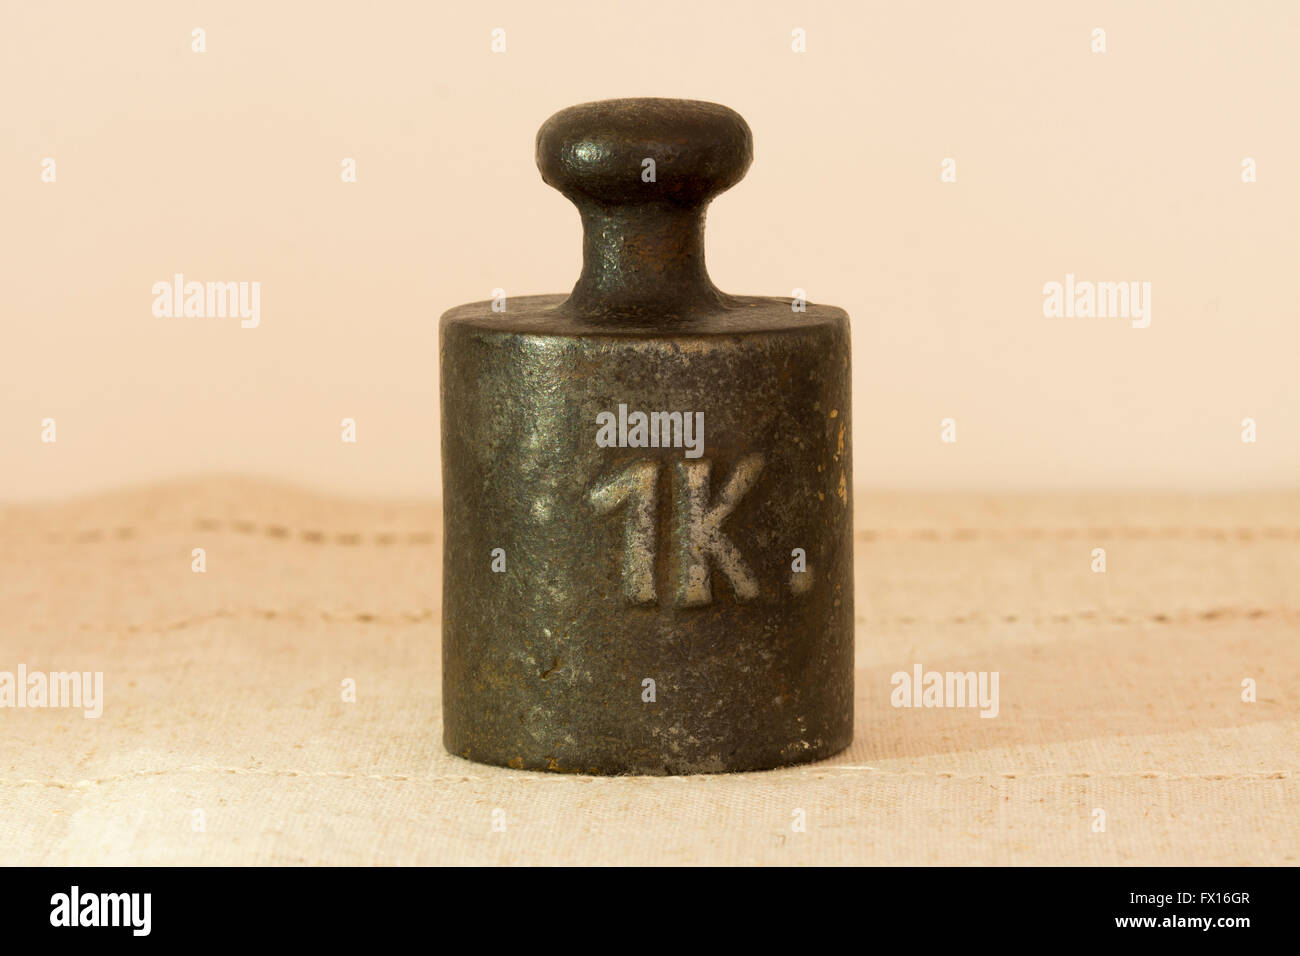 An antique one kilogram weight for use with a weighing scale - Stock Image